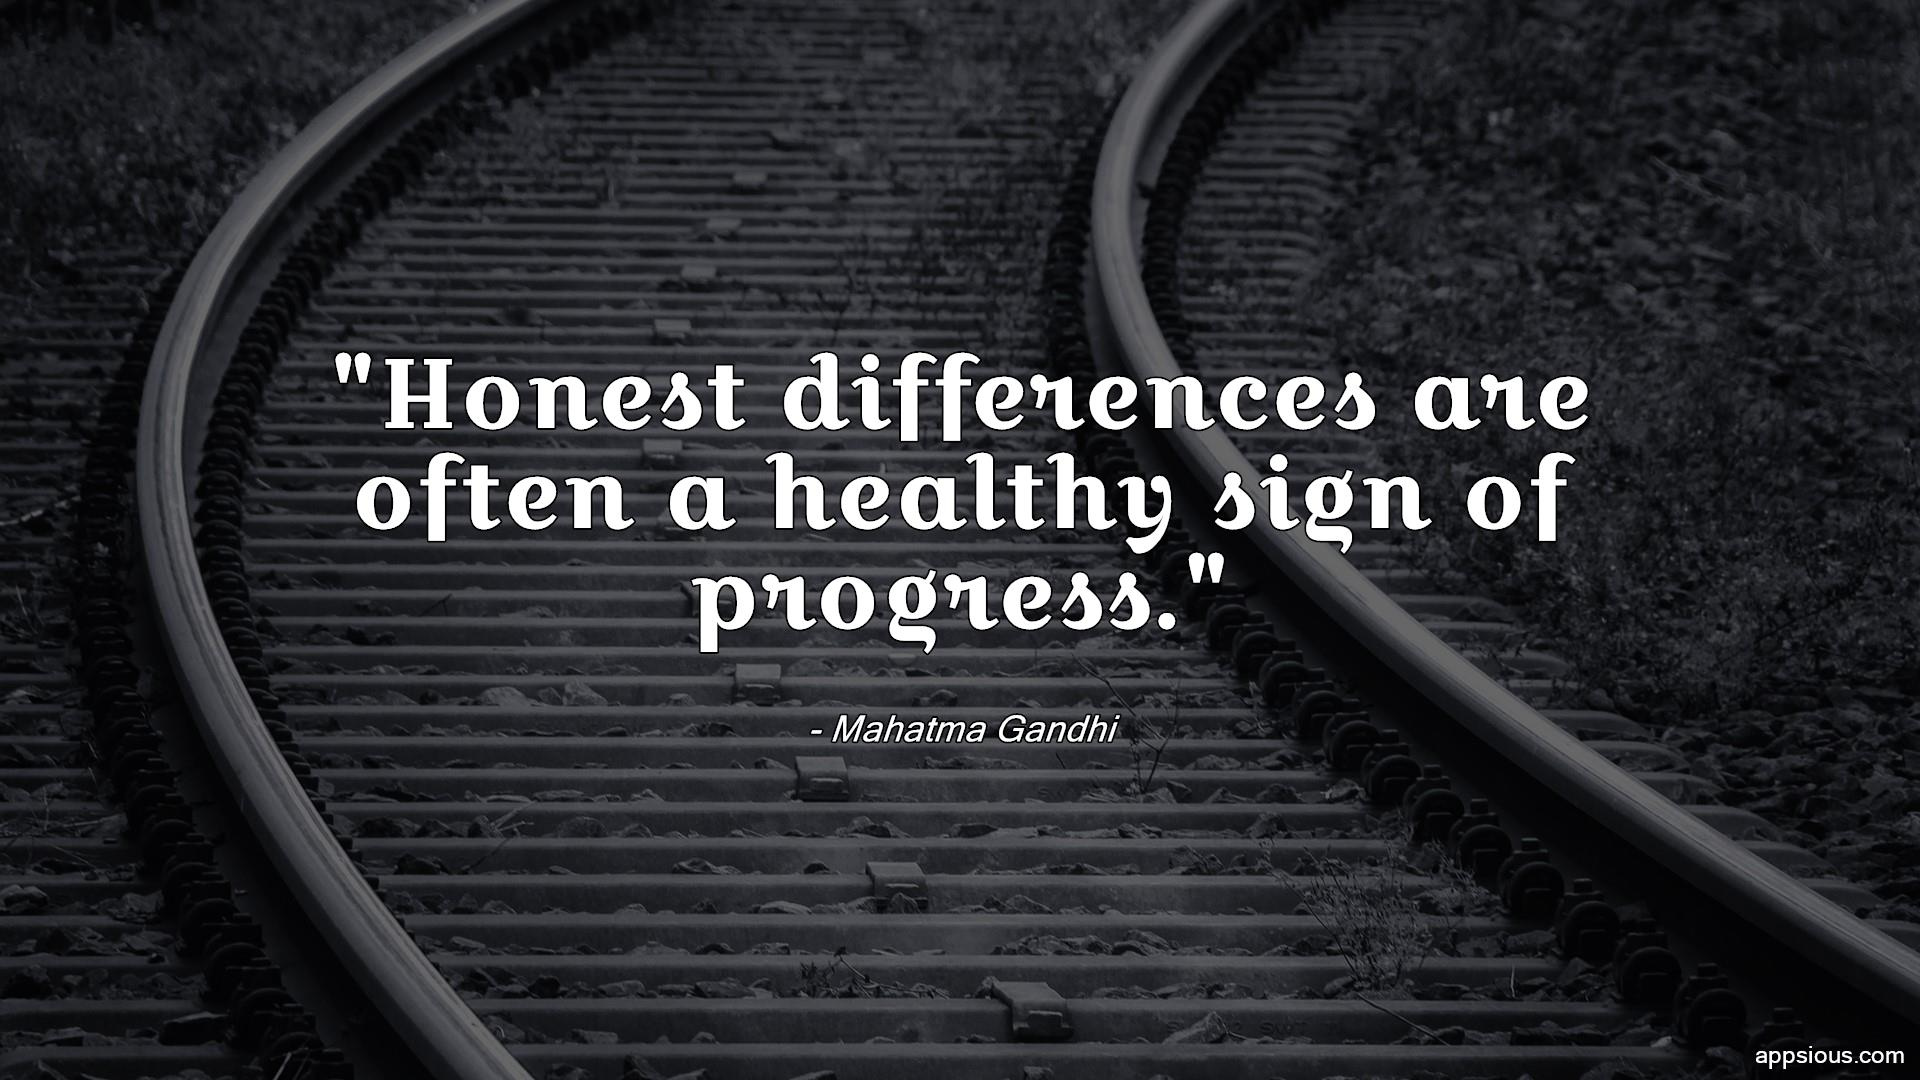 Honest differences are often a healthy sign of progress.